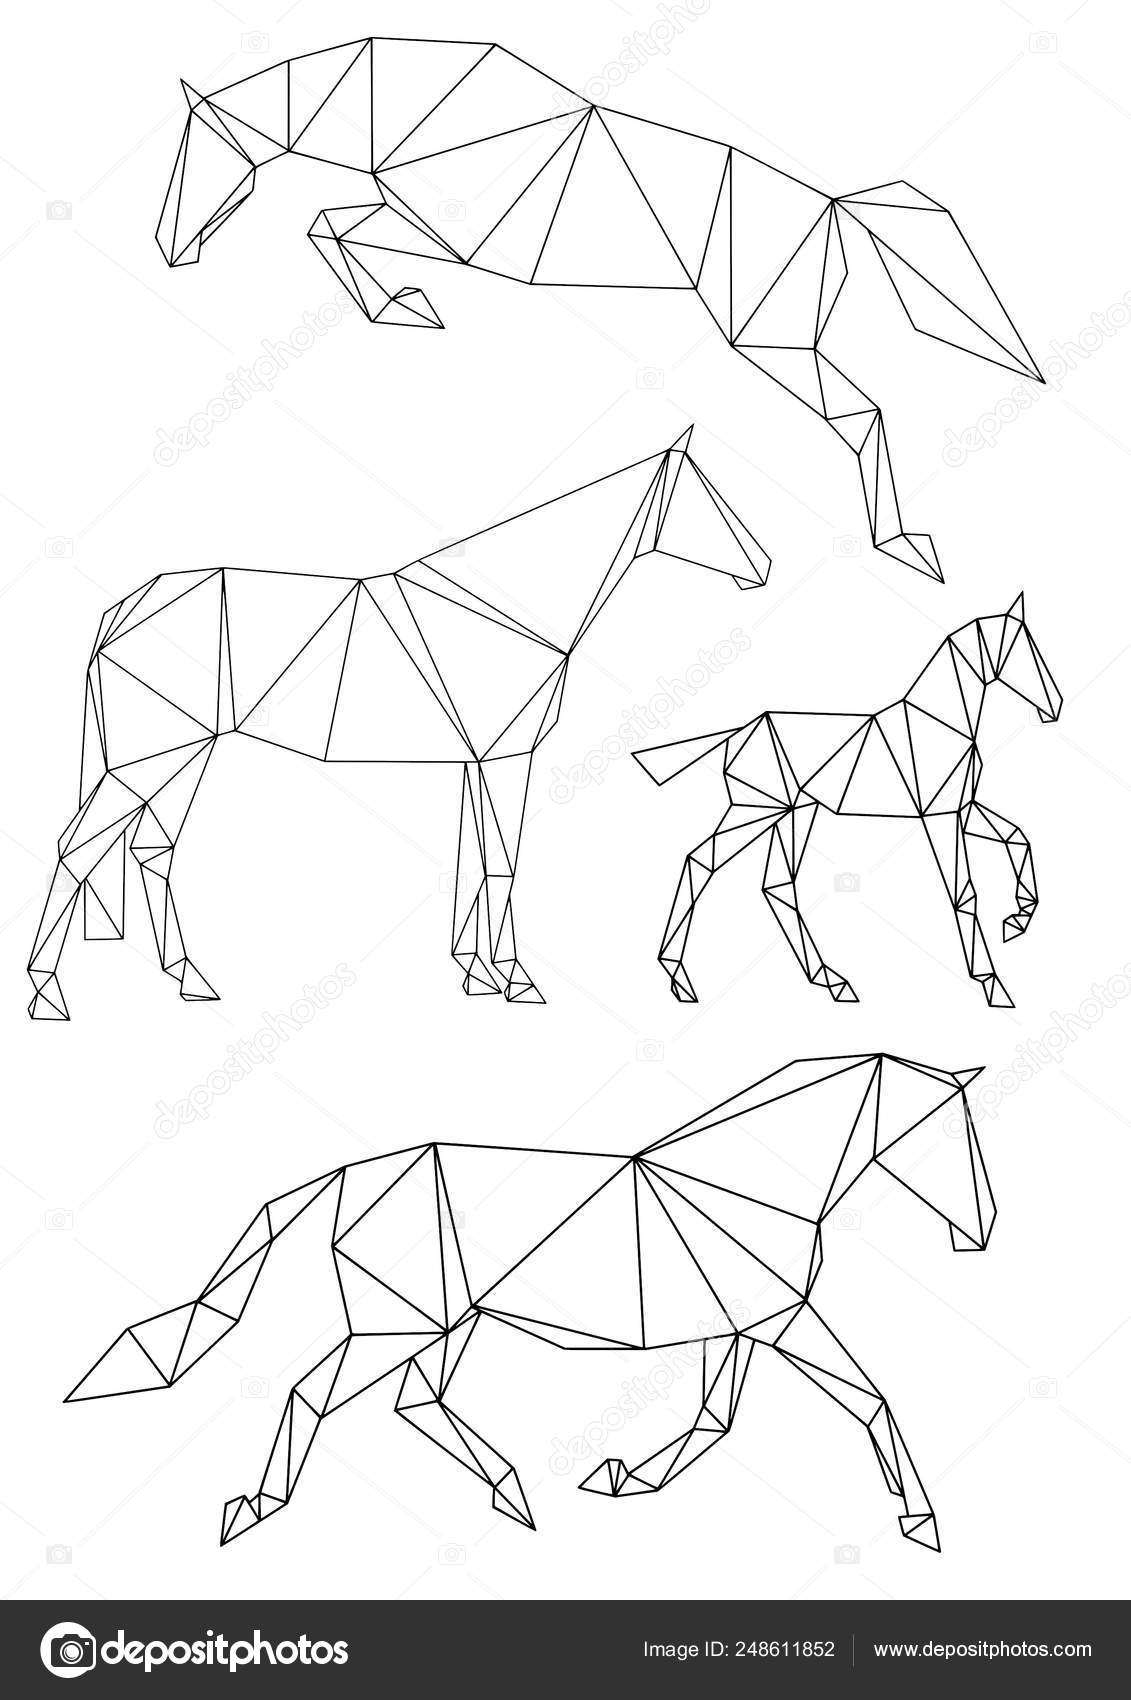 Set Four Equine Silhouettes Geometric Style Divided Triangles Showjumping Horse Stock Vector C Arsanimalium 248611852